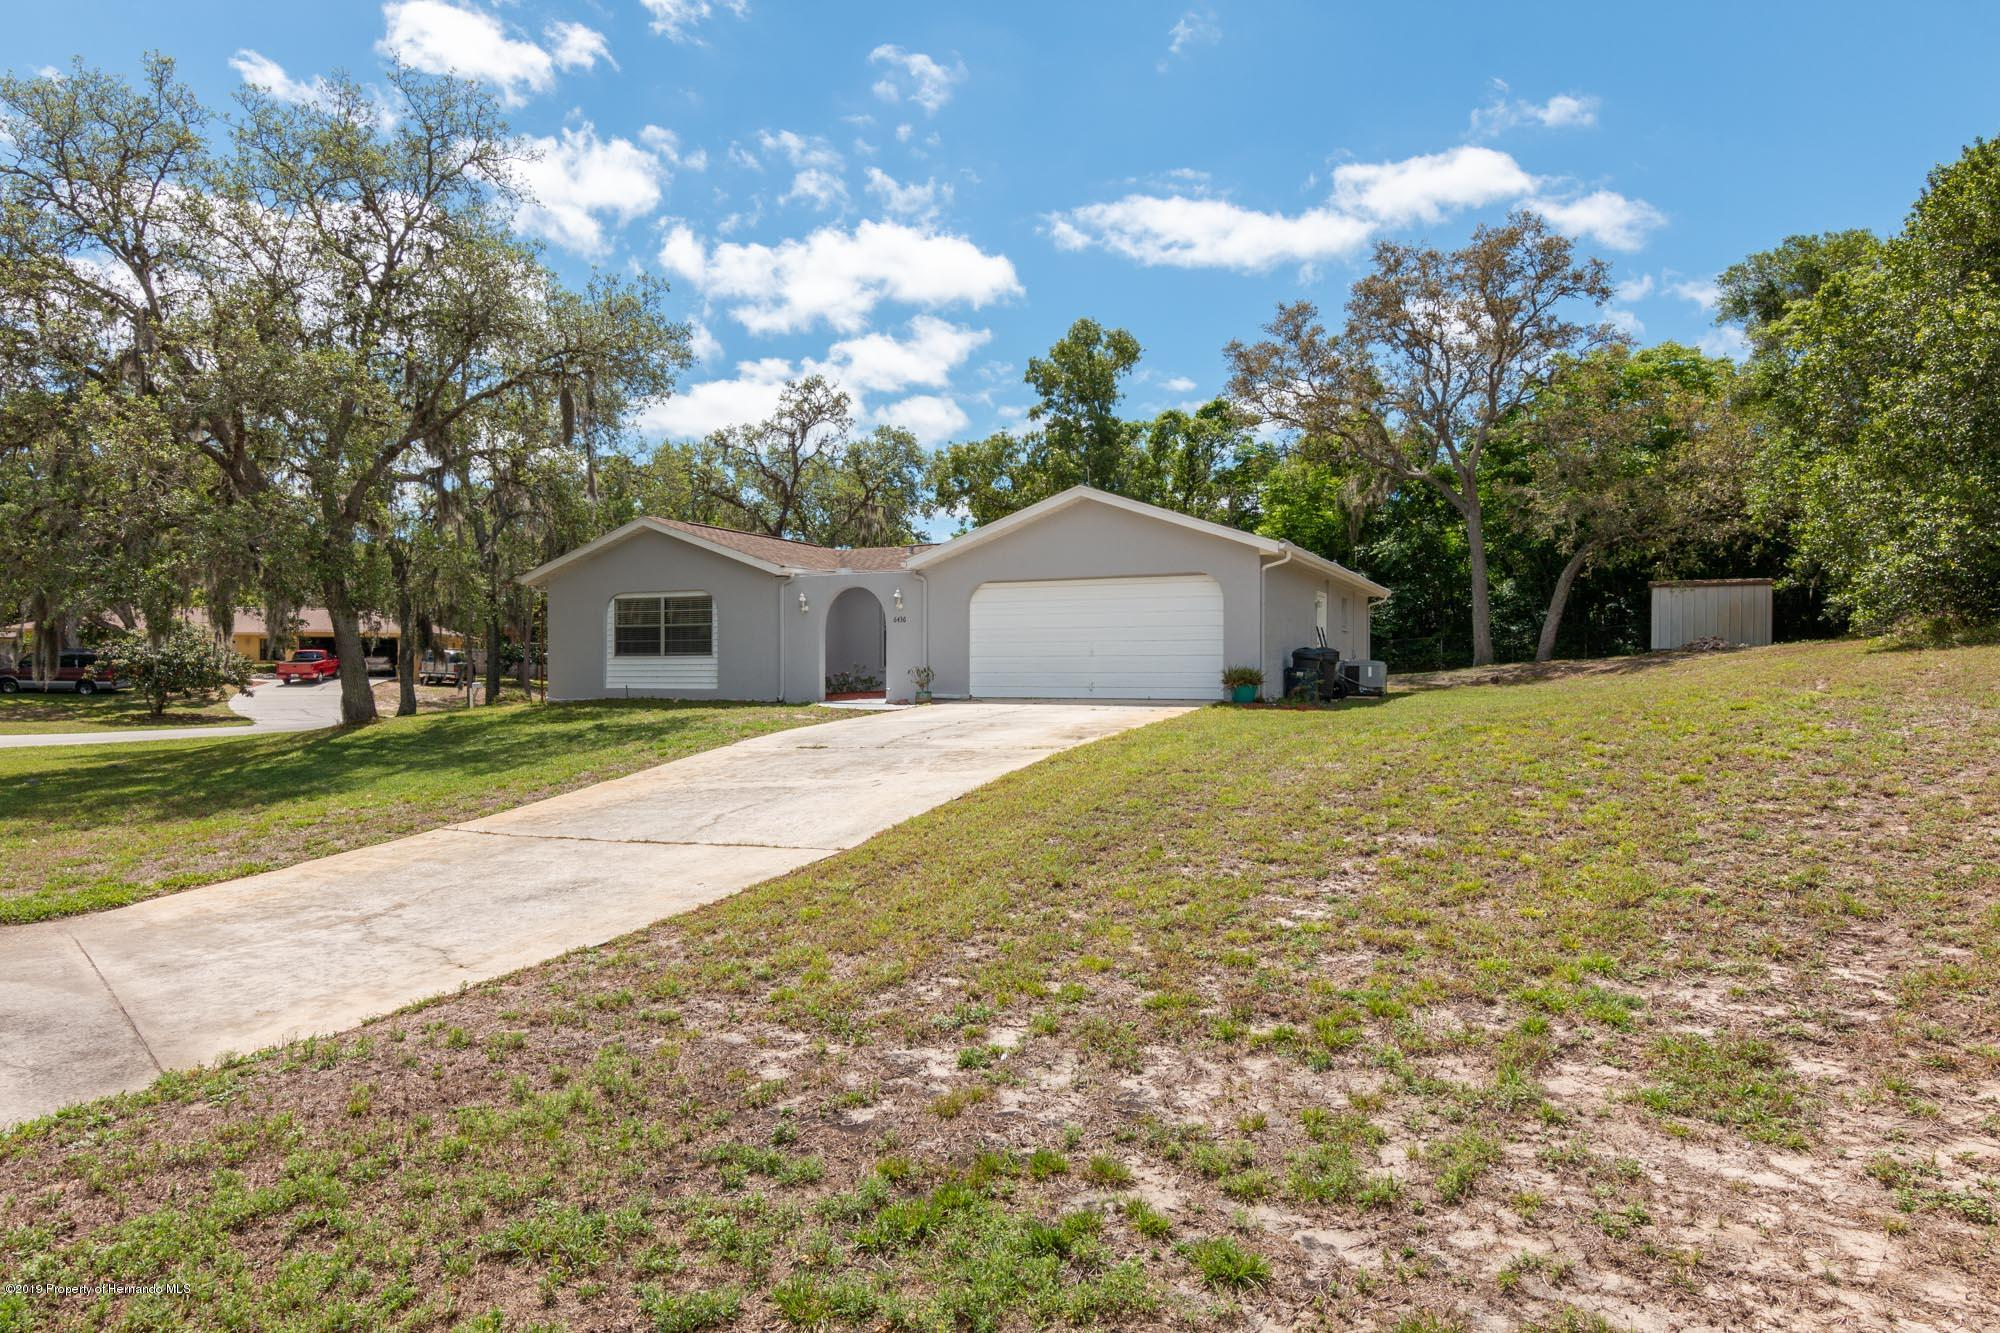 6436 Clearwater Drive, Spring Hill, Florida 34606, 3 Bedrooms Bedrooms, ,2 BathroomsBathrooms,Residential,For Sale,Clearwater,2200558